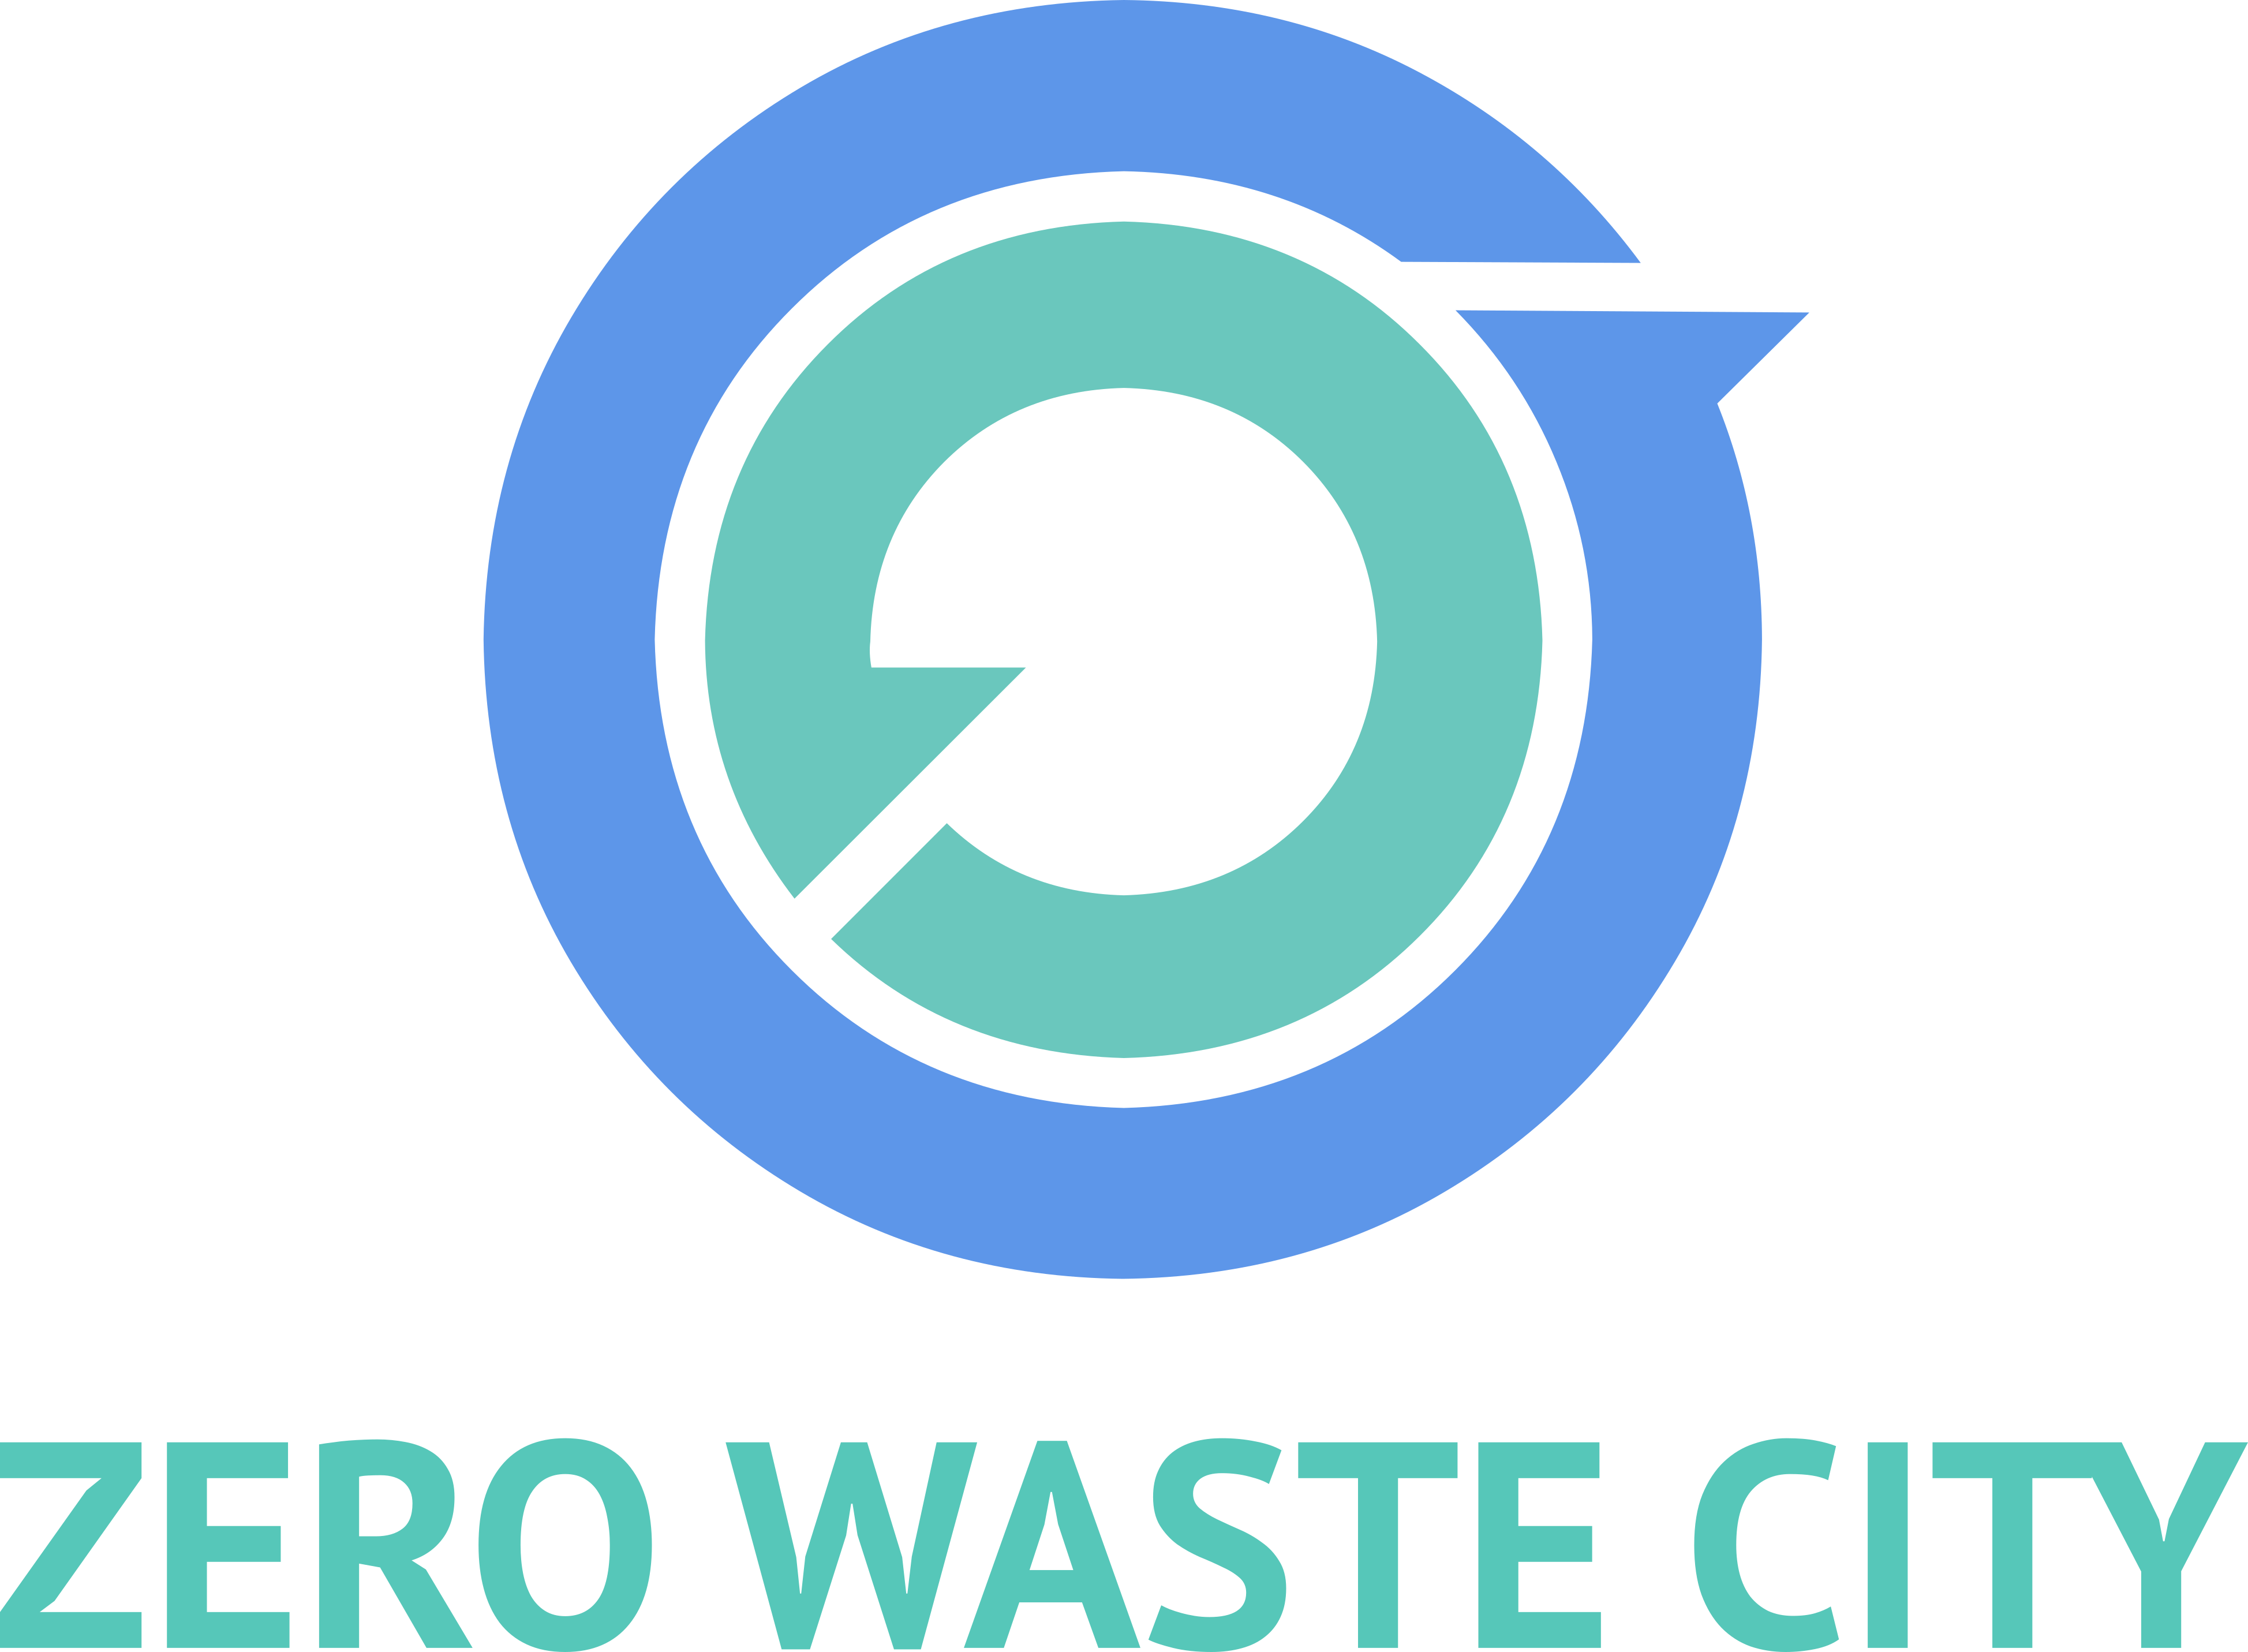 Zero Waste City logo